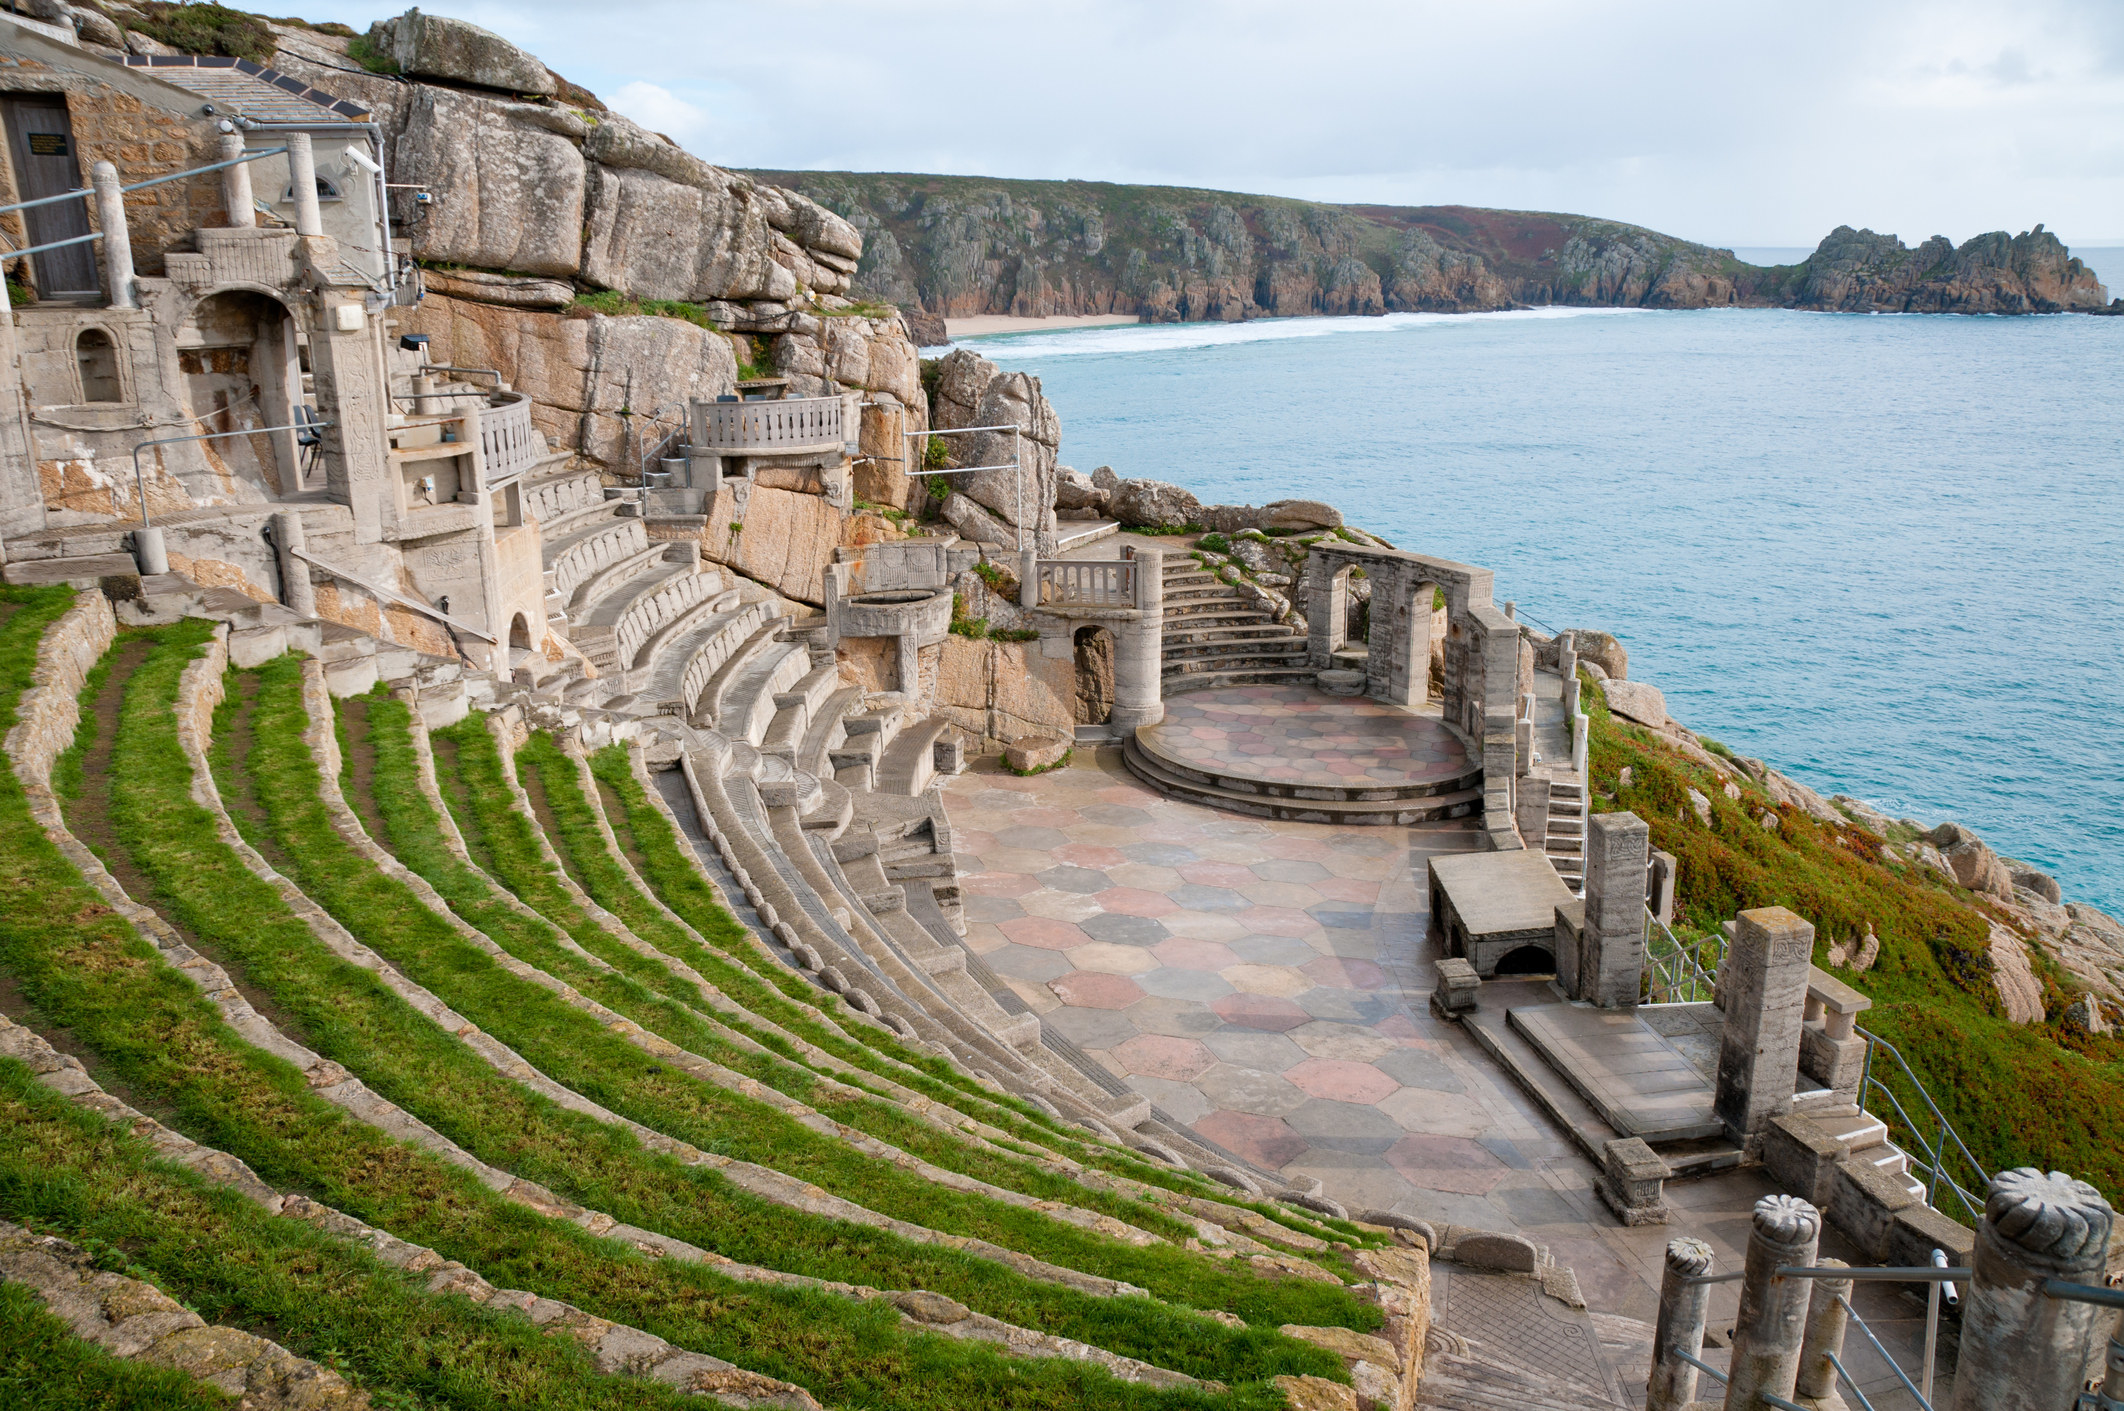 The outside theatre made from stone is perched on a cliff – you can see the cliffs of Cornwall in the background with the sea below